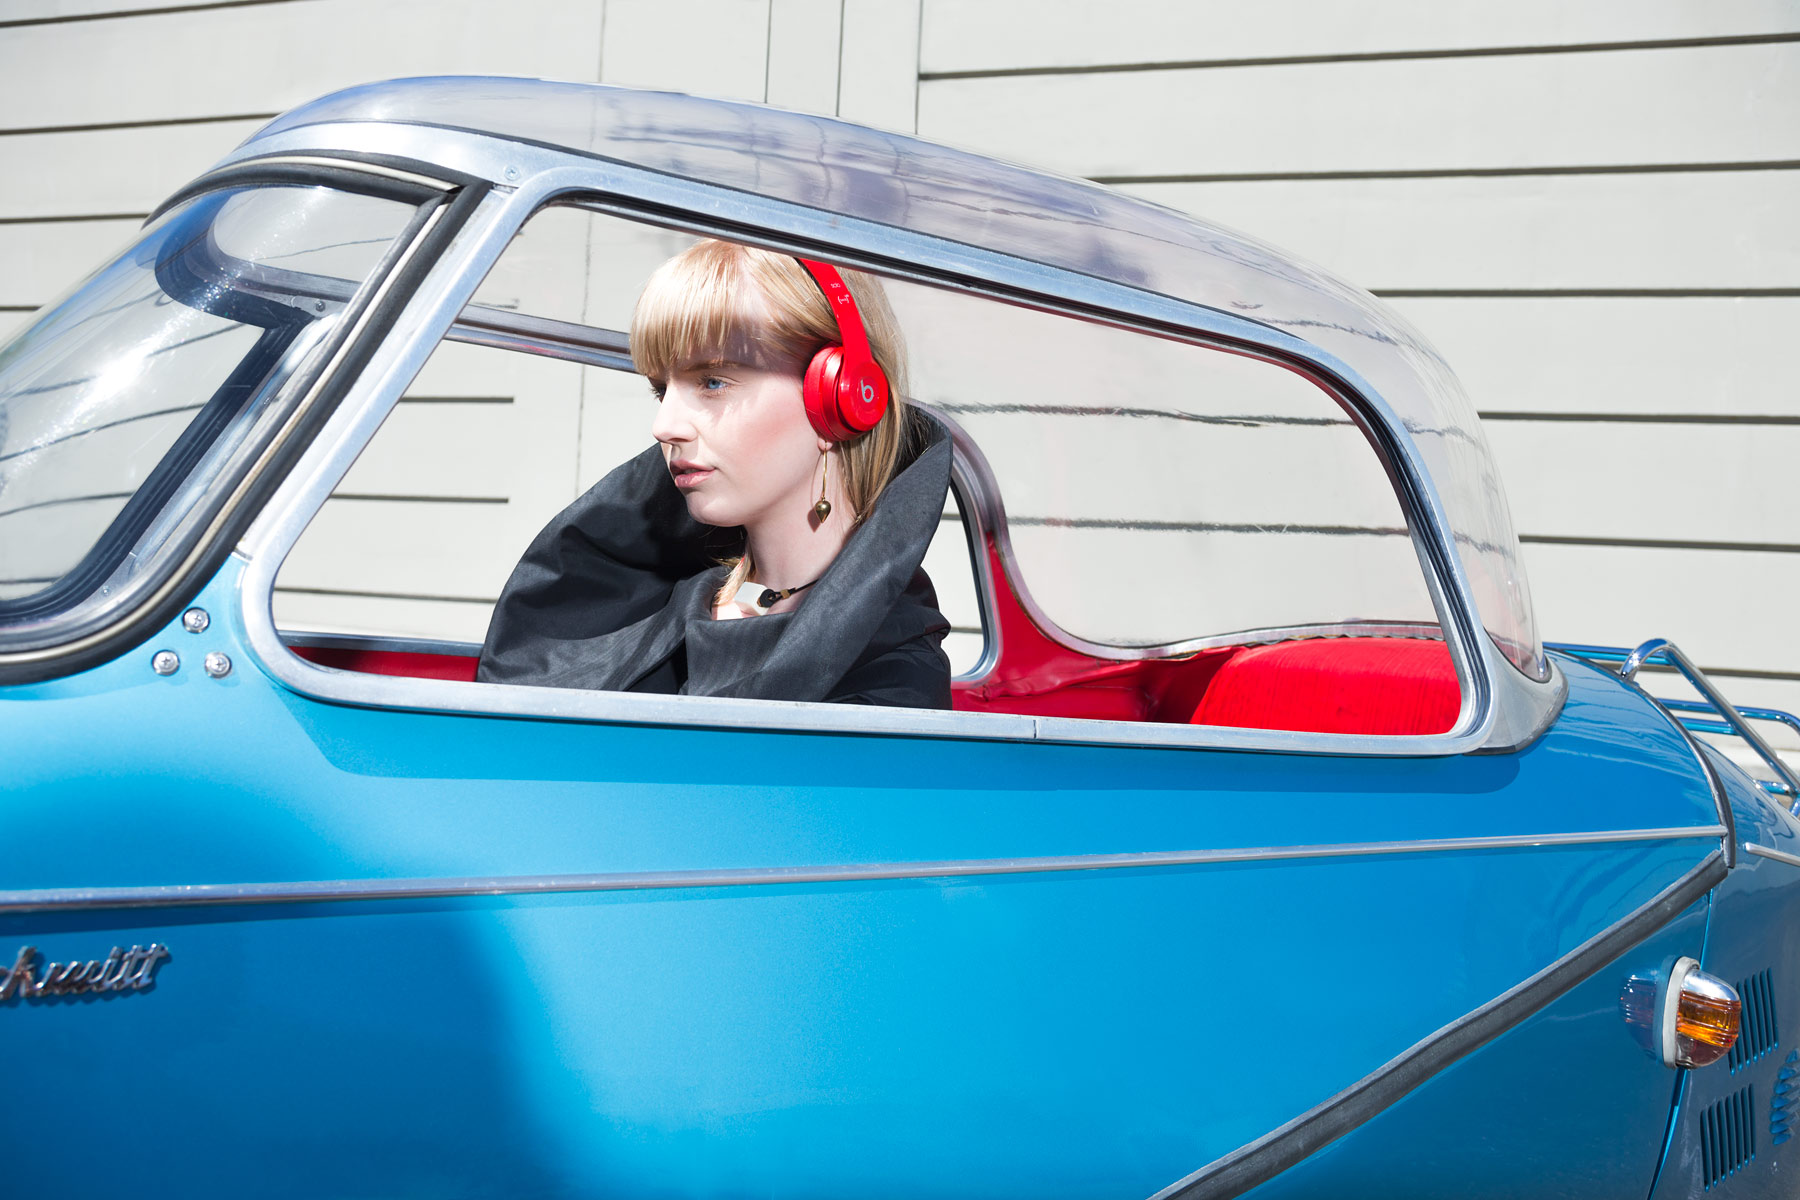 Conceptual portrait of a woman in a Messerschmitt car by Michael Schmitt